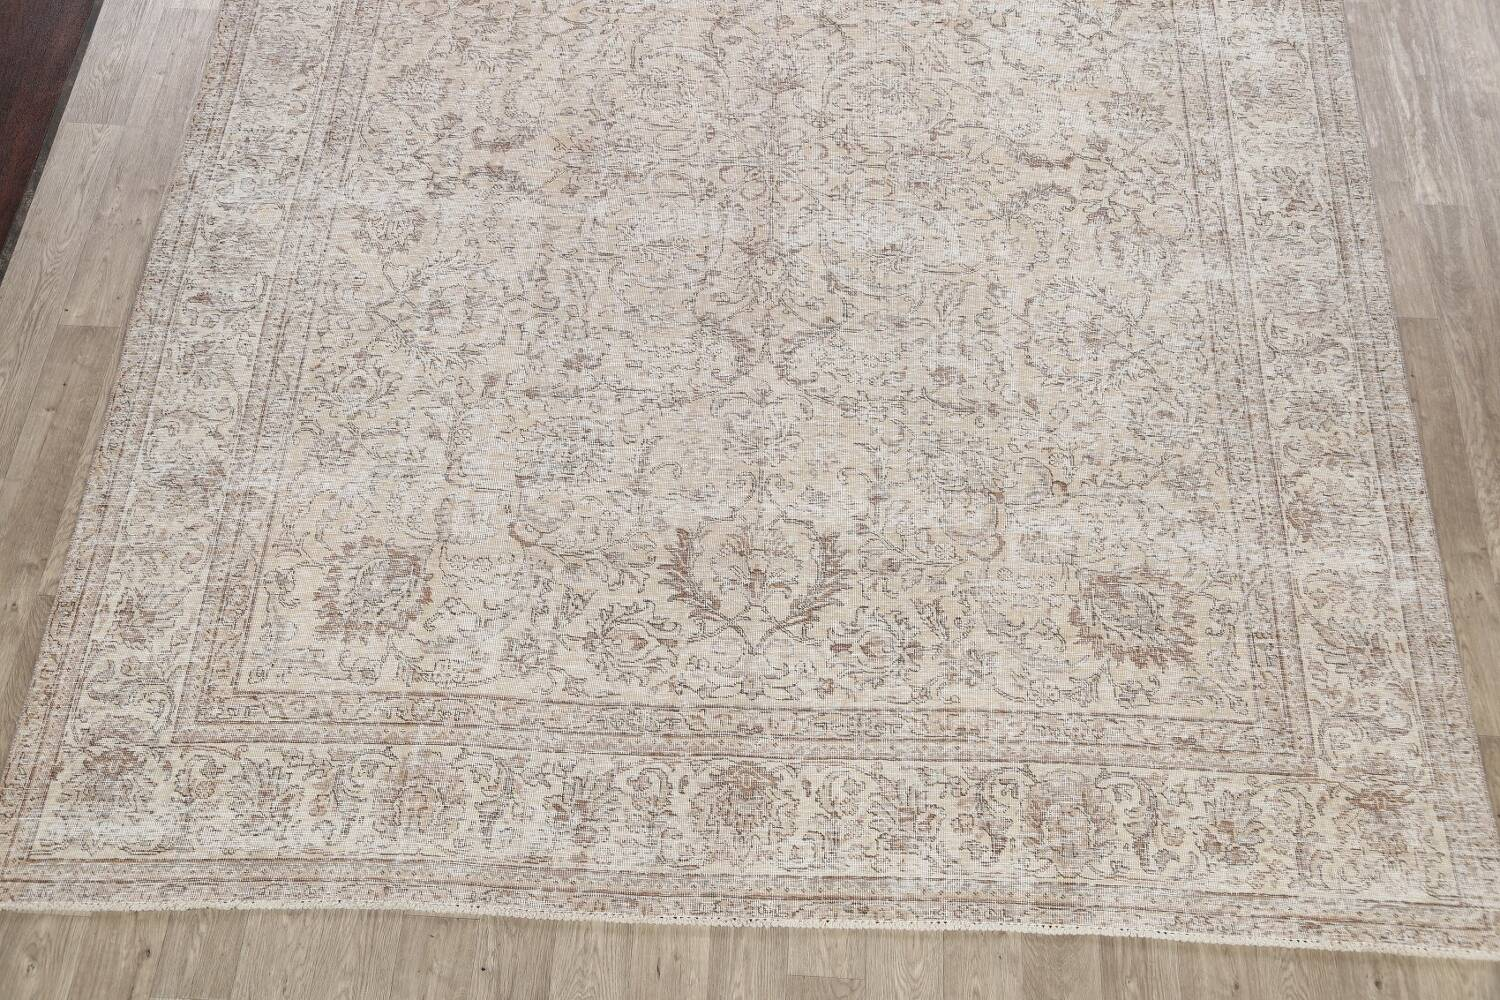 Antique Muted Floral Tabriz Persian Area Rug 9x12 image 8